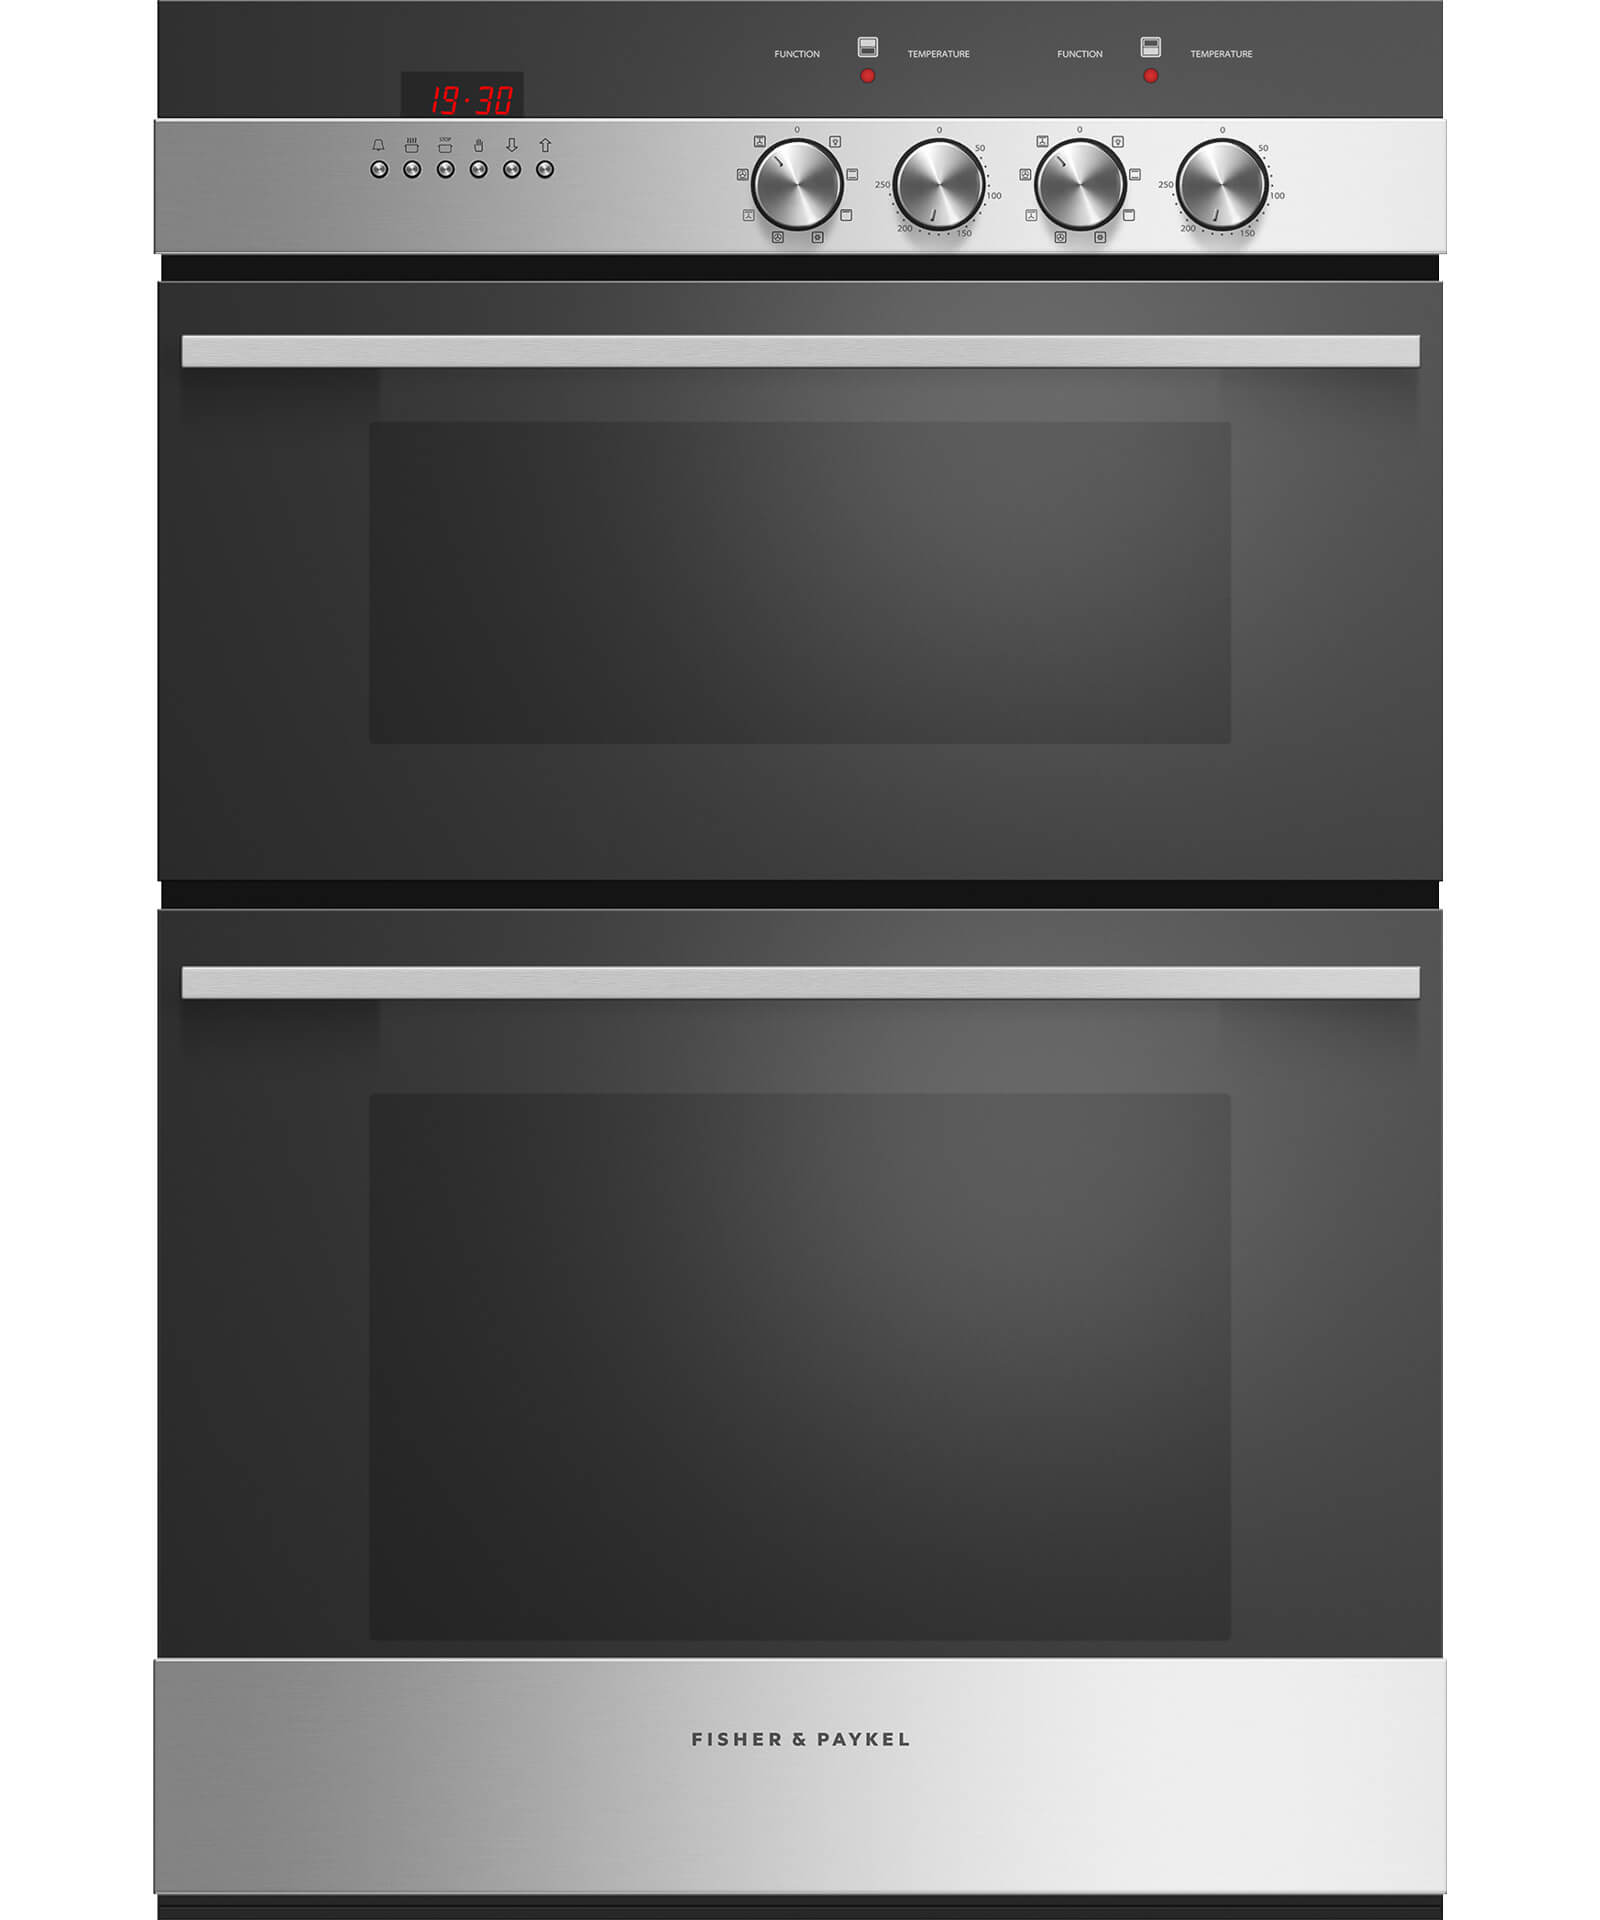 OB60B77CEX3 - 60cm 7 Function Double Built-in Oven - 45L + 71L Gross Capacity - 81477